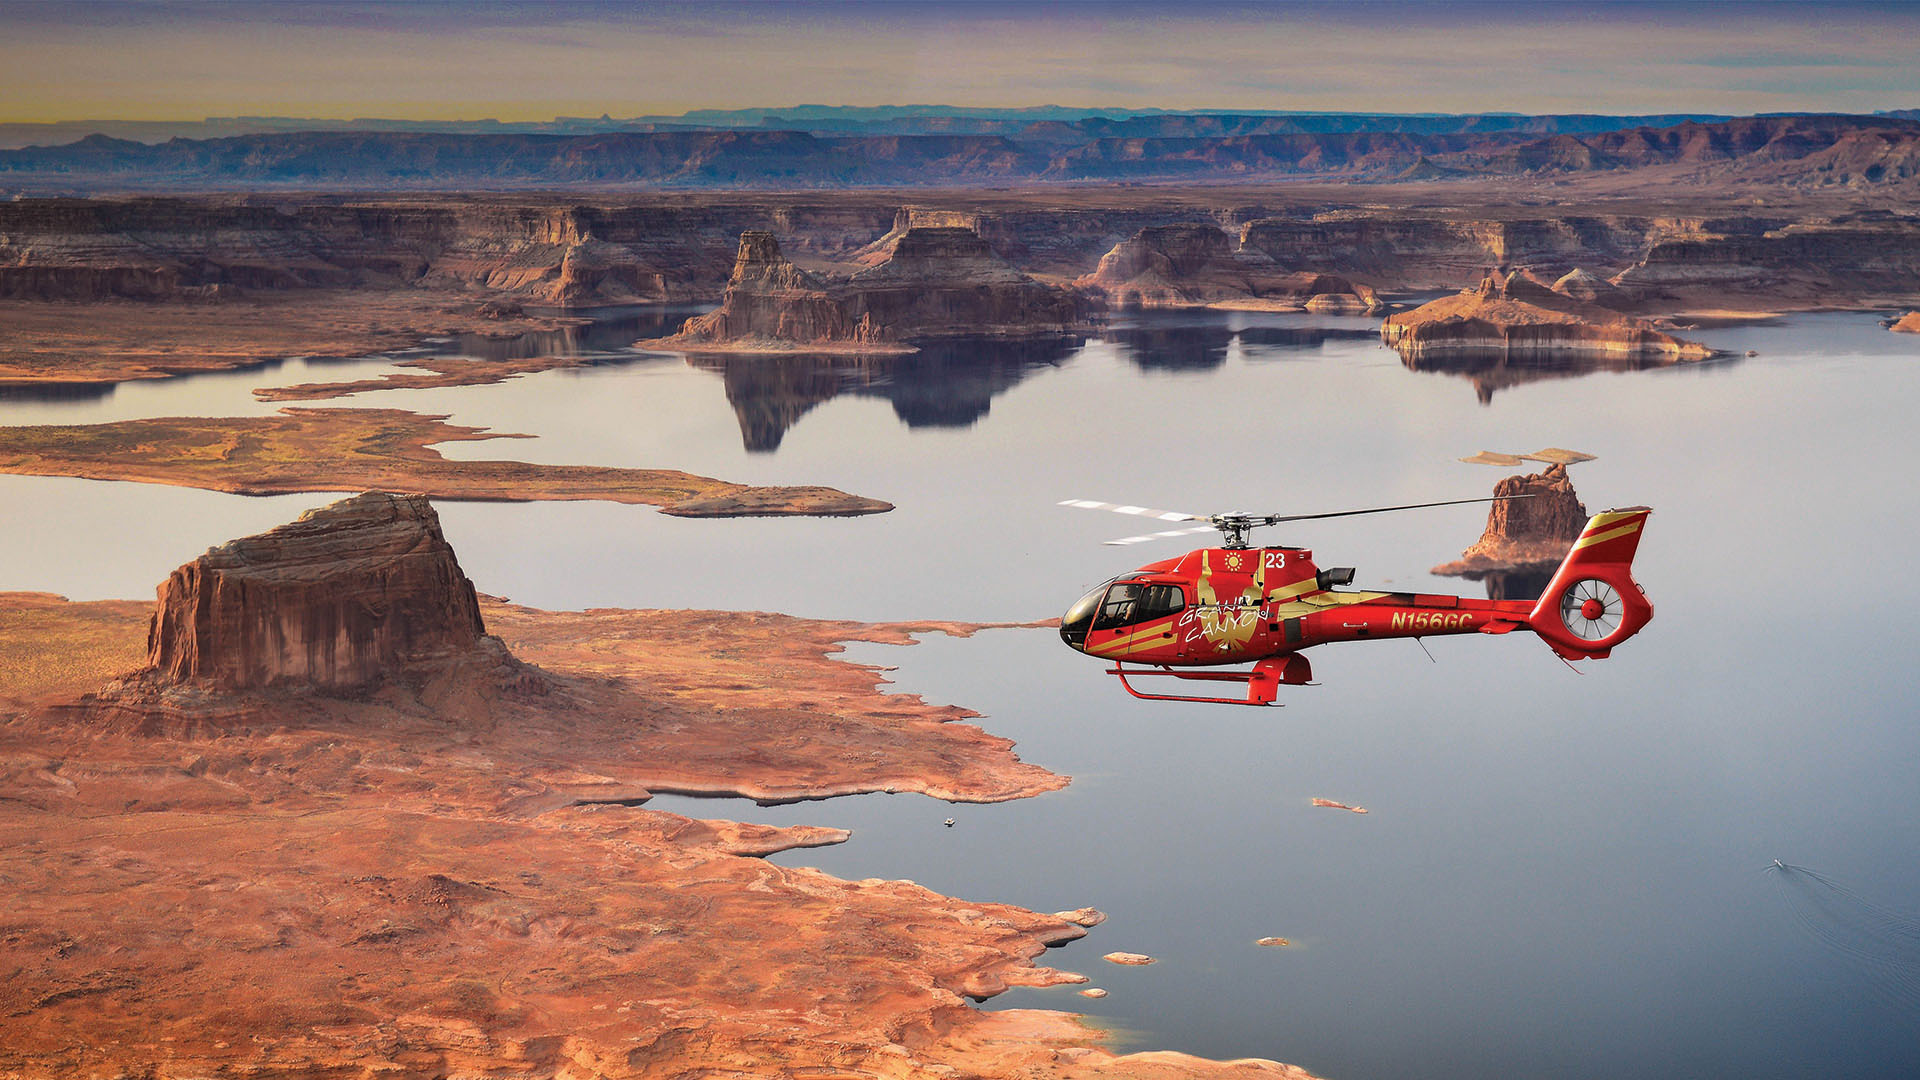 A red helicopter flies over a lake surrounded by desert.